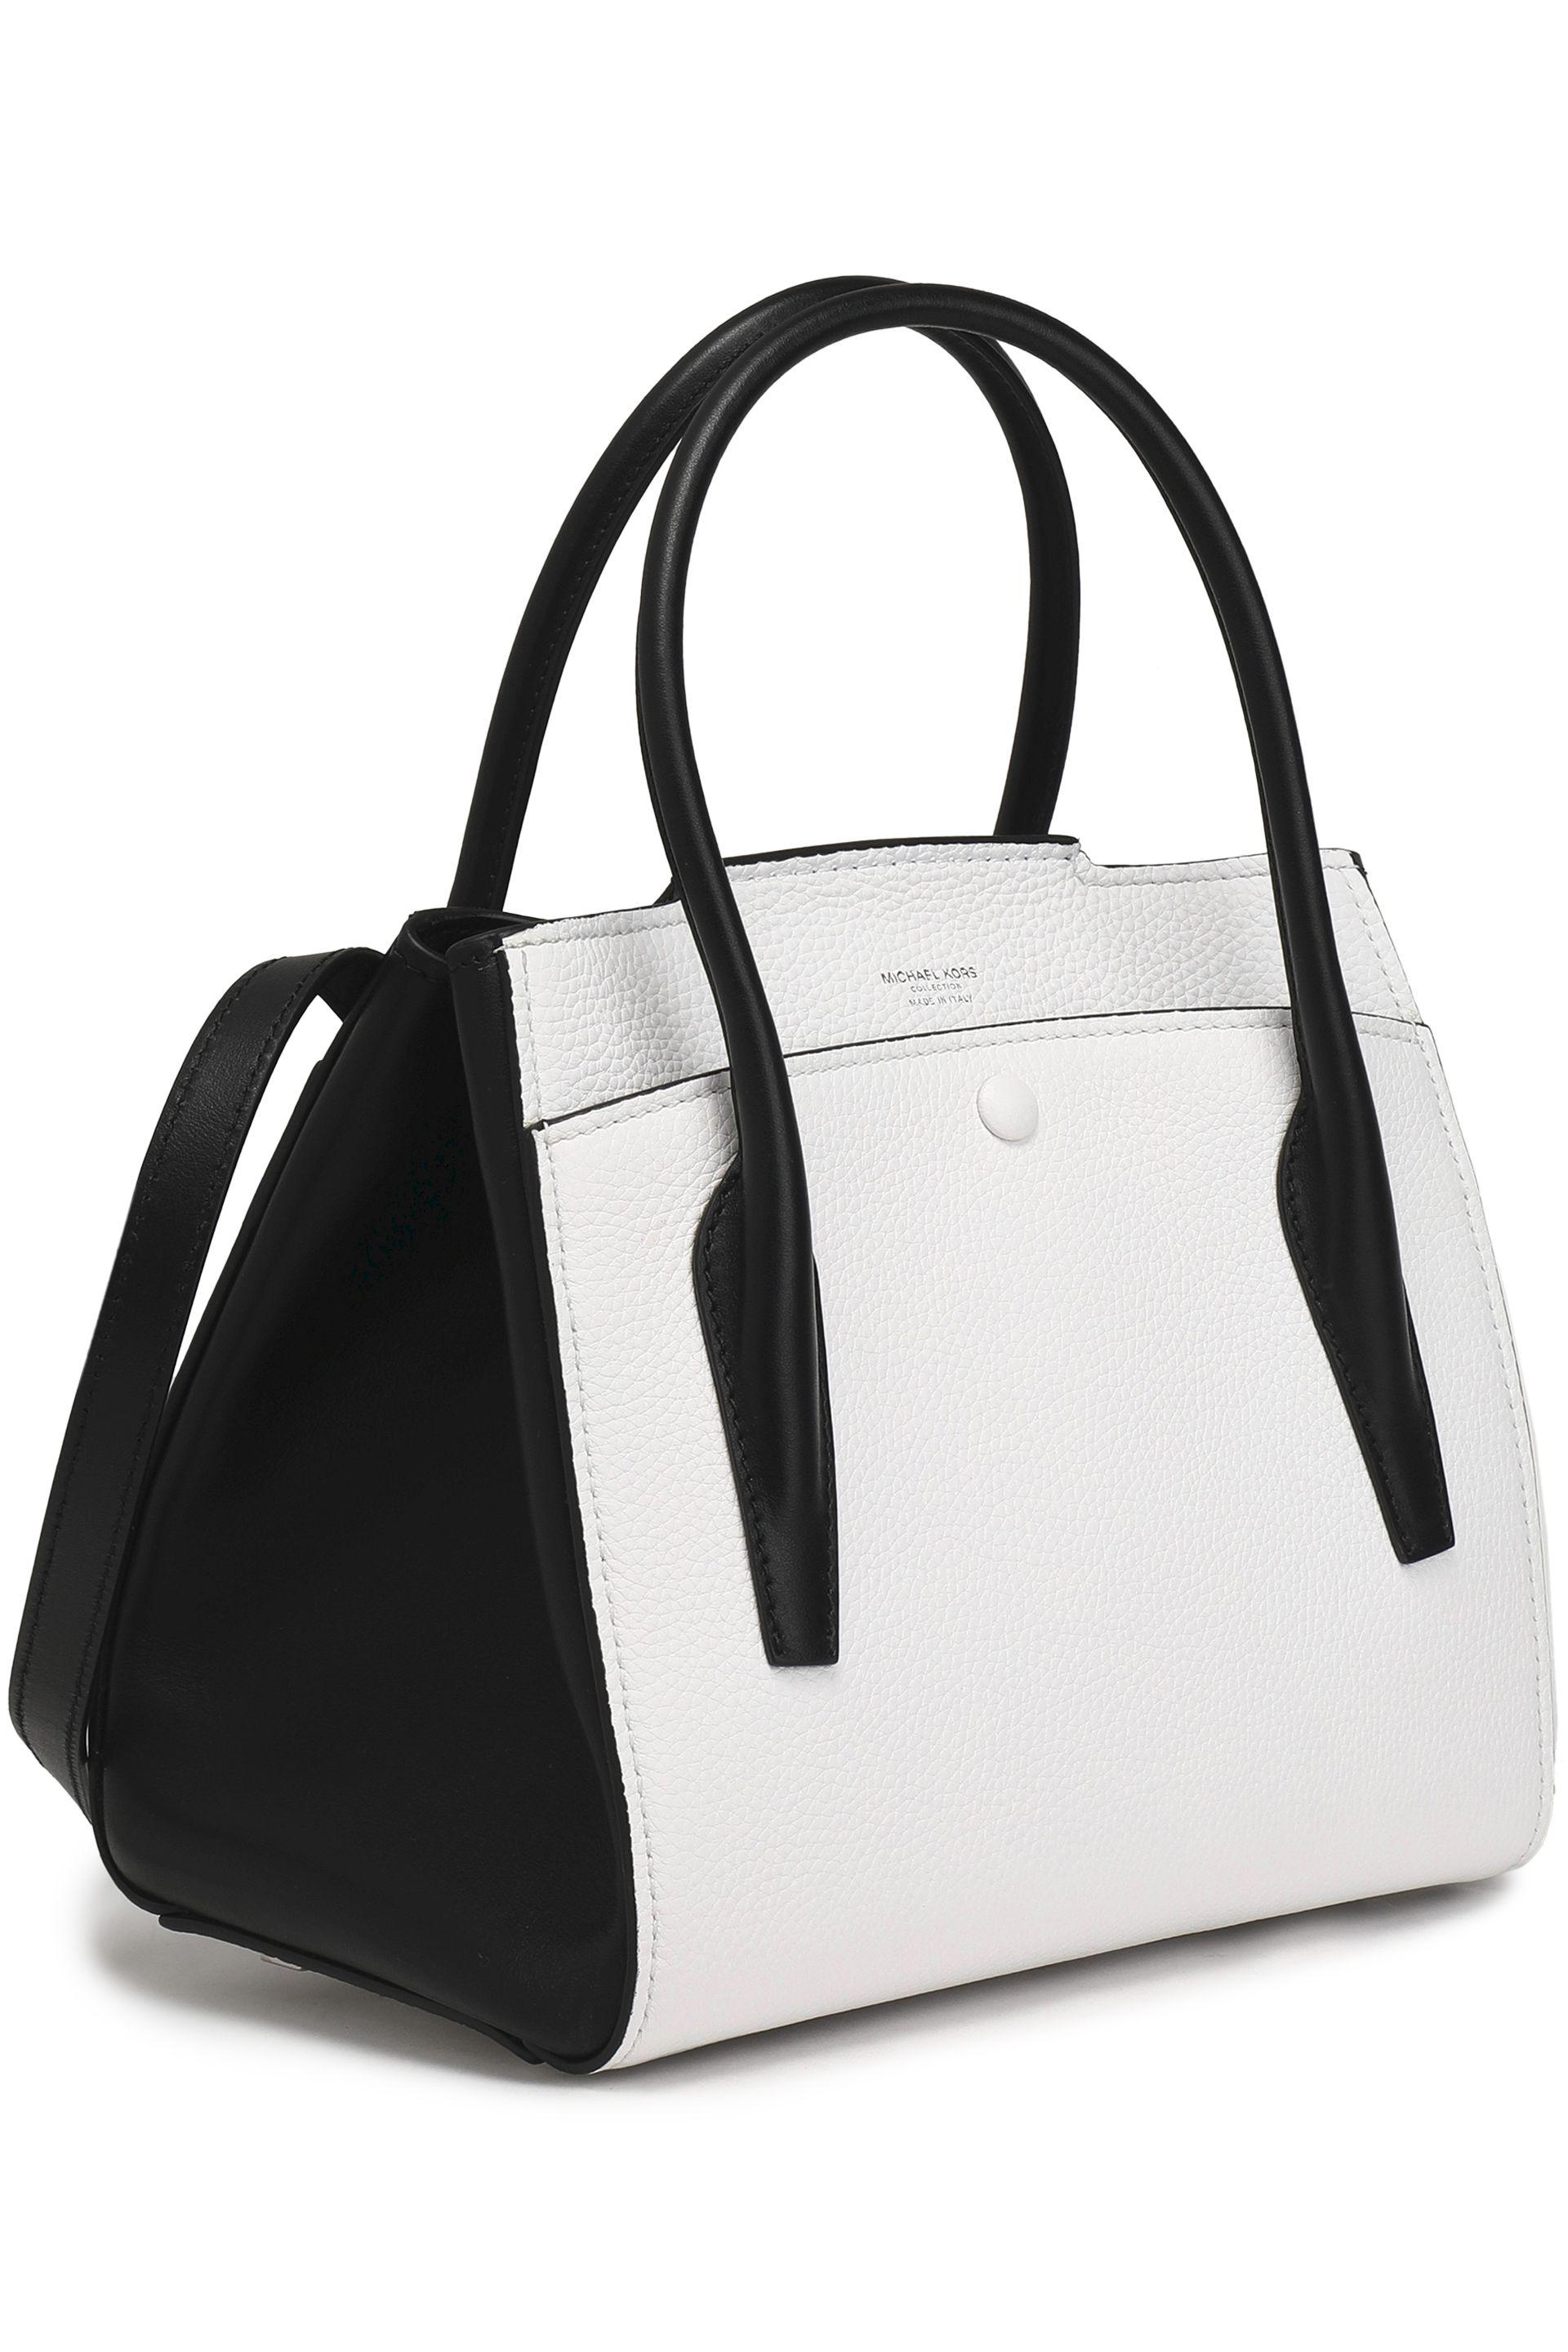 ... Black Two-tone Smooth And Textured-leather Shoulder Bag - Lyst. View  fullscreen 5169f529c3421